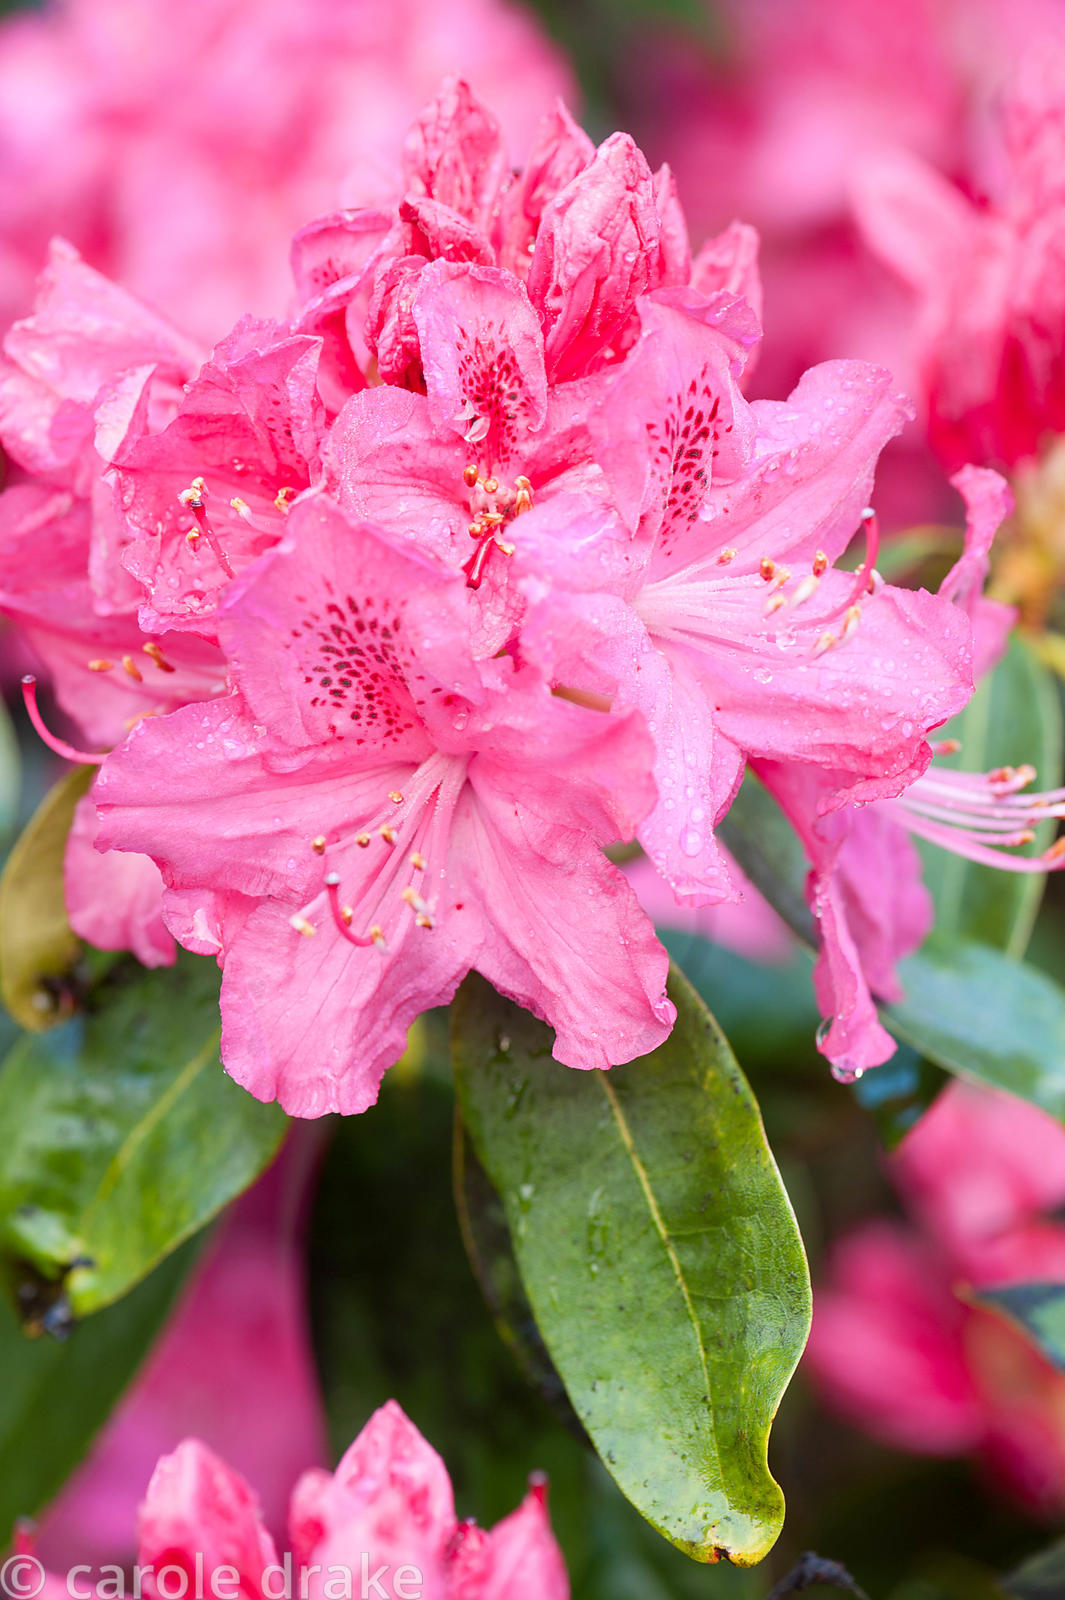 Rhododendron 'Cynthia', AGM. Holker Hall, Grange over Sands, Cumbria, UK